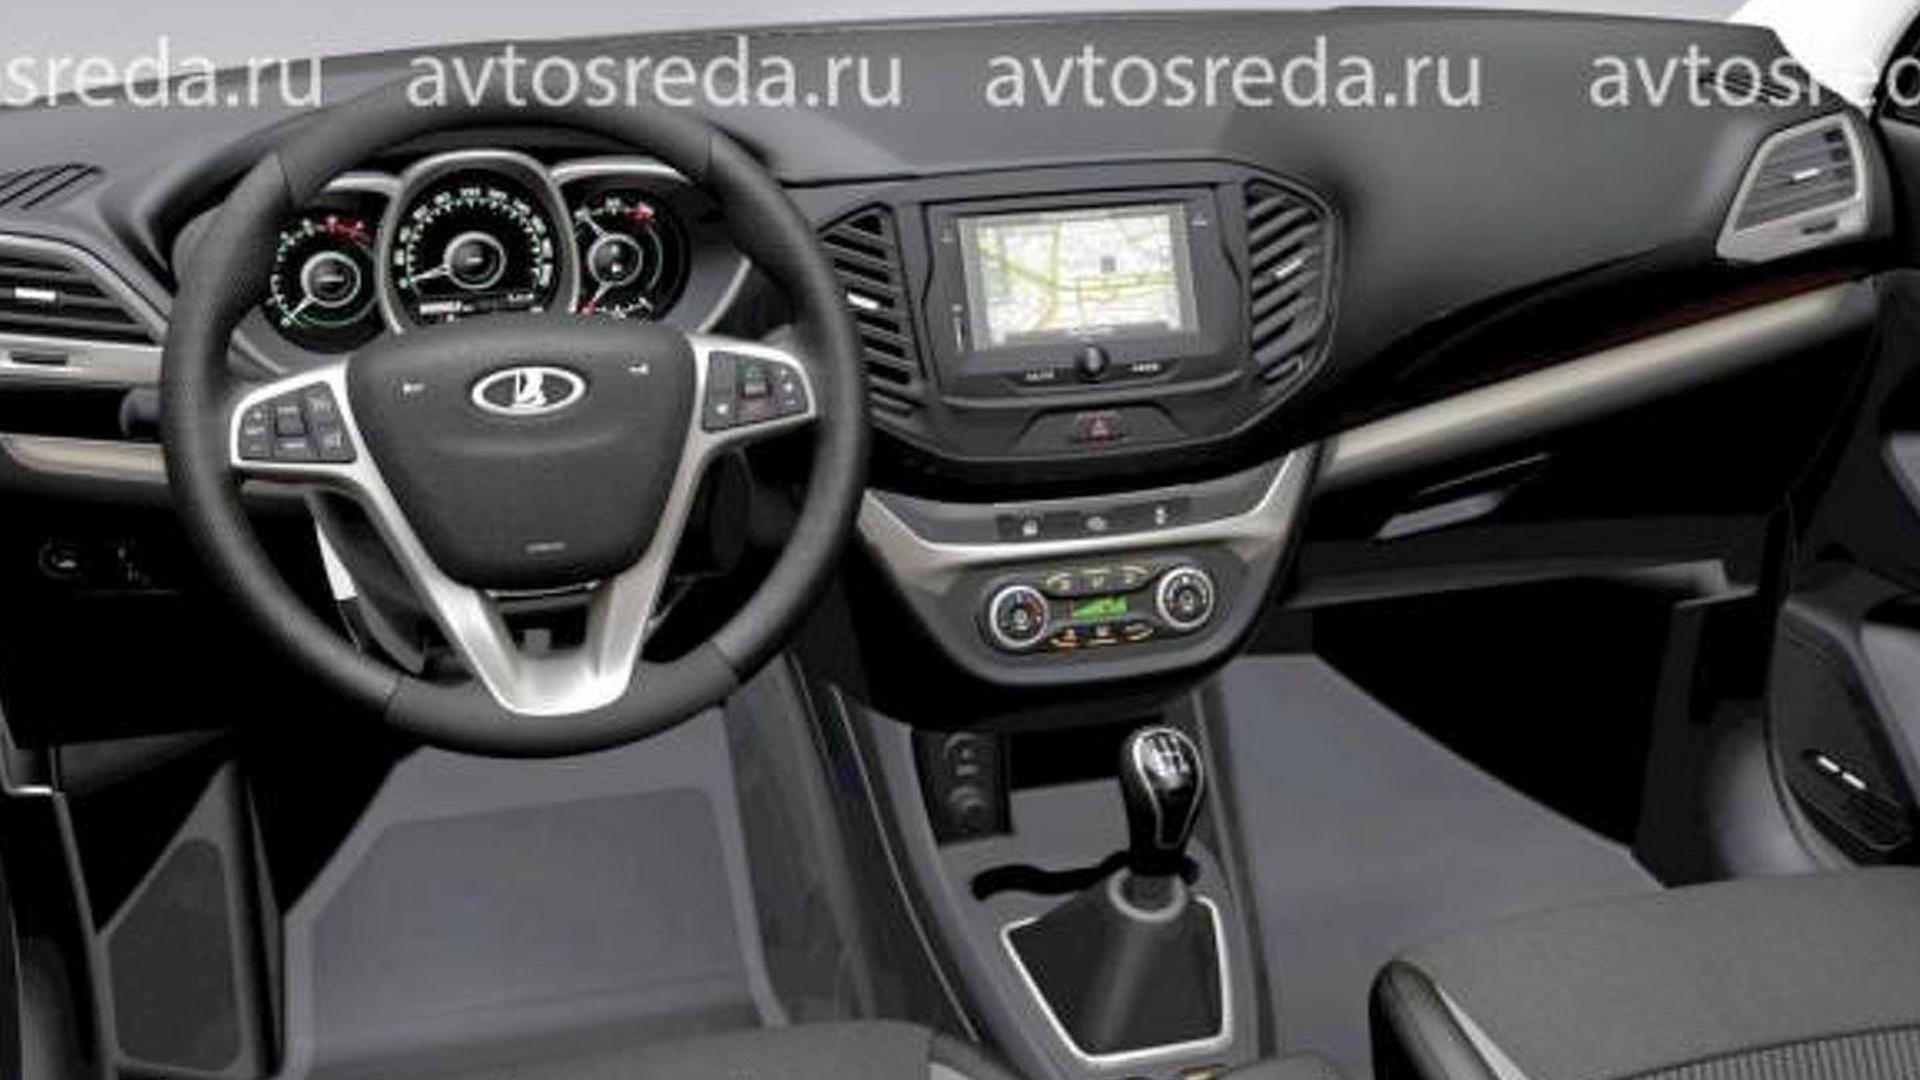 Lada vesta interior images galleries for Interieur lada niva